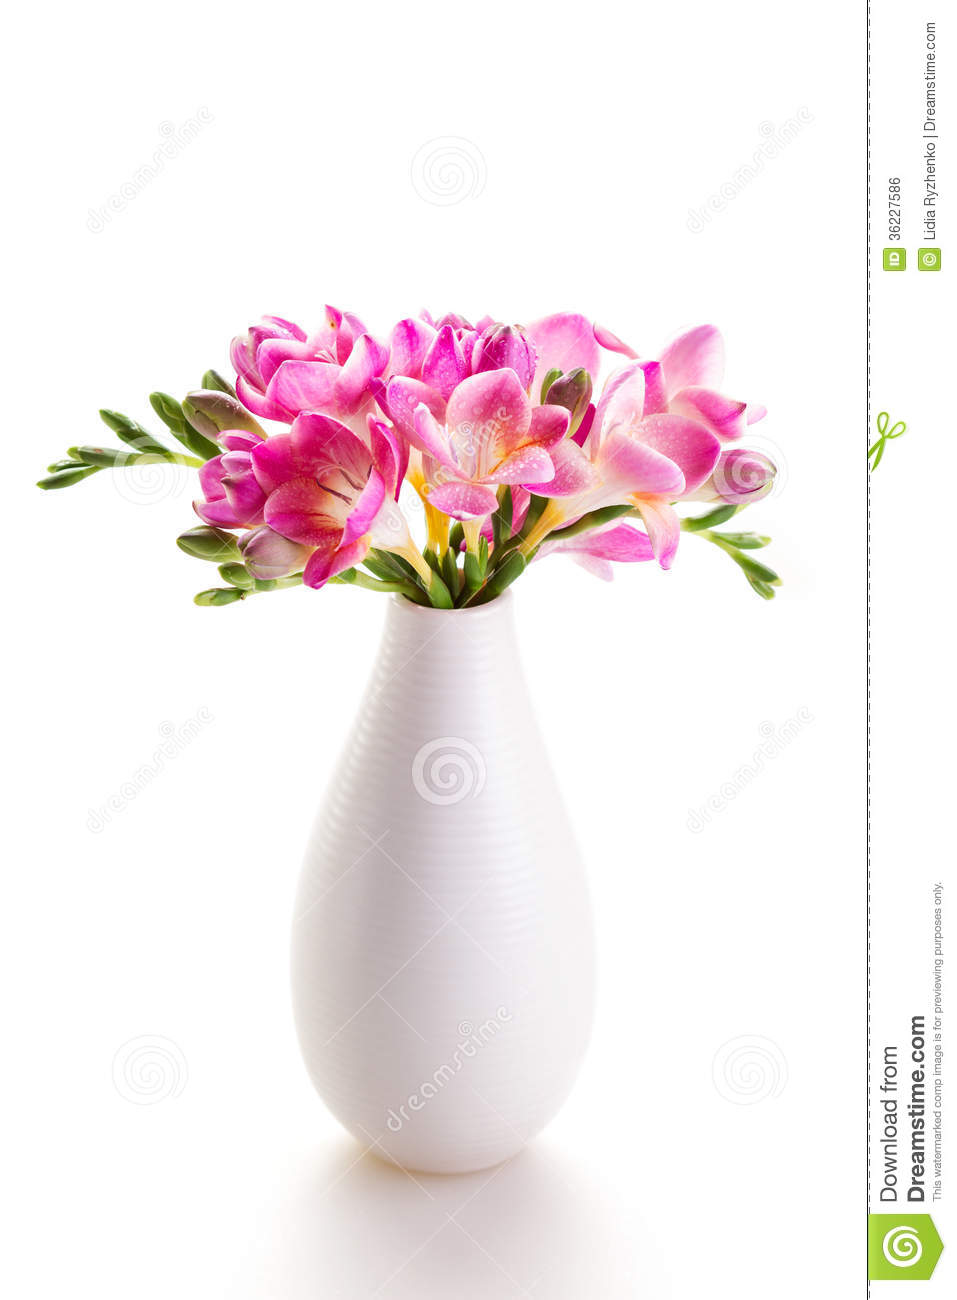 Bouquet of pink flowers in a white vase stock photo image of bouquet of pink flowers in a white vase mightylinksfo